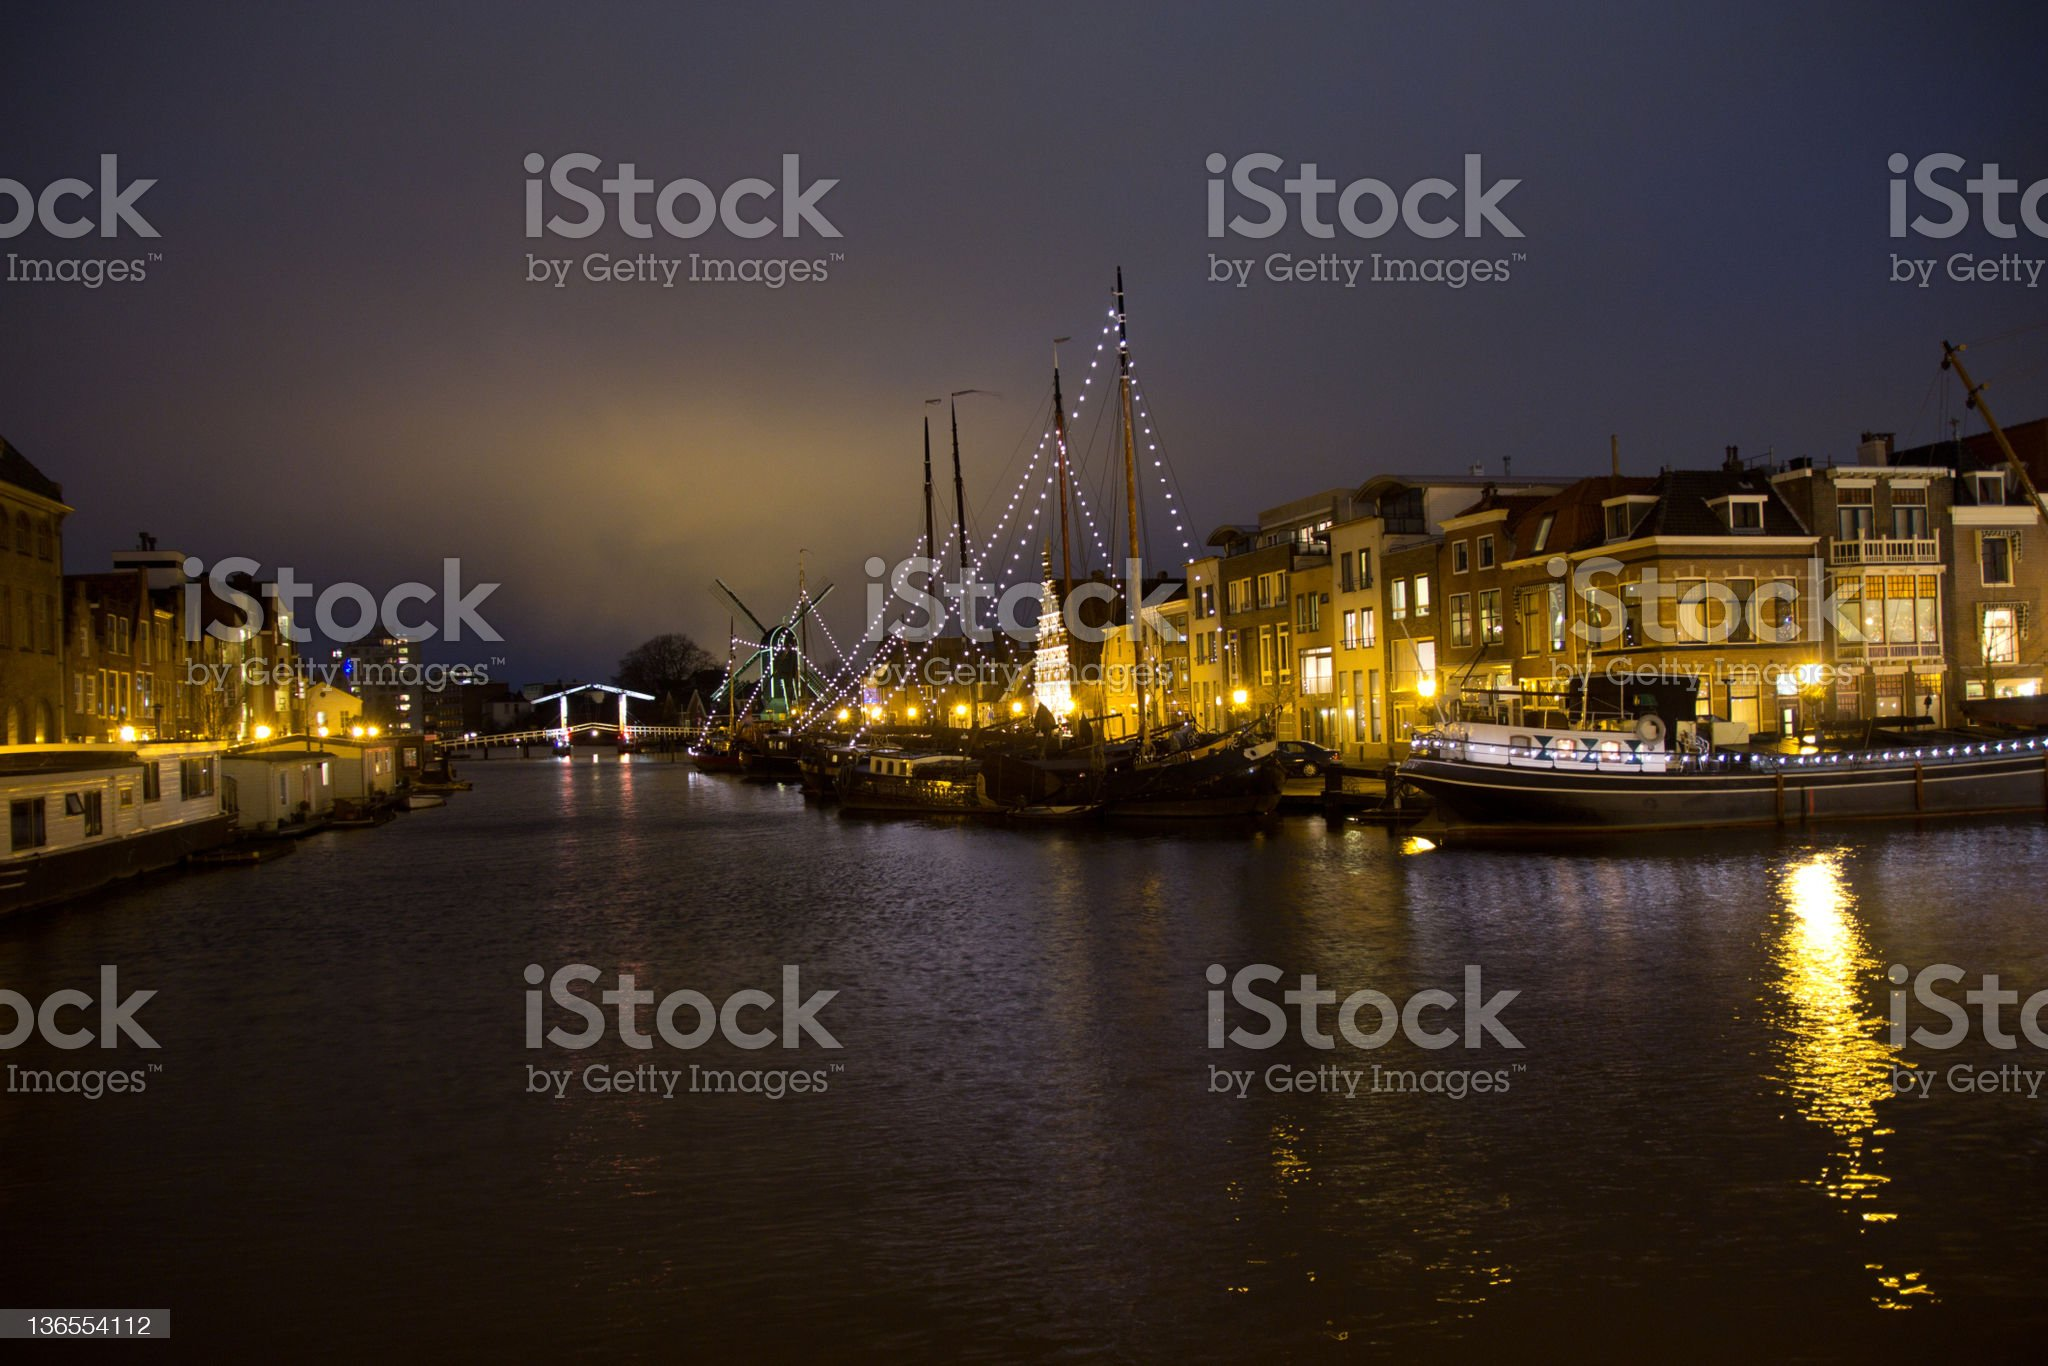 Illuminated canals in Holland during Christmas Time royalty-free stock photo